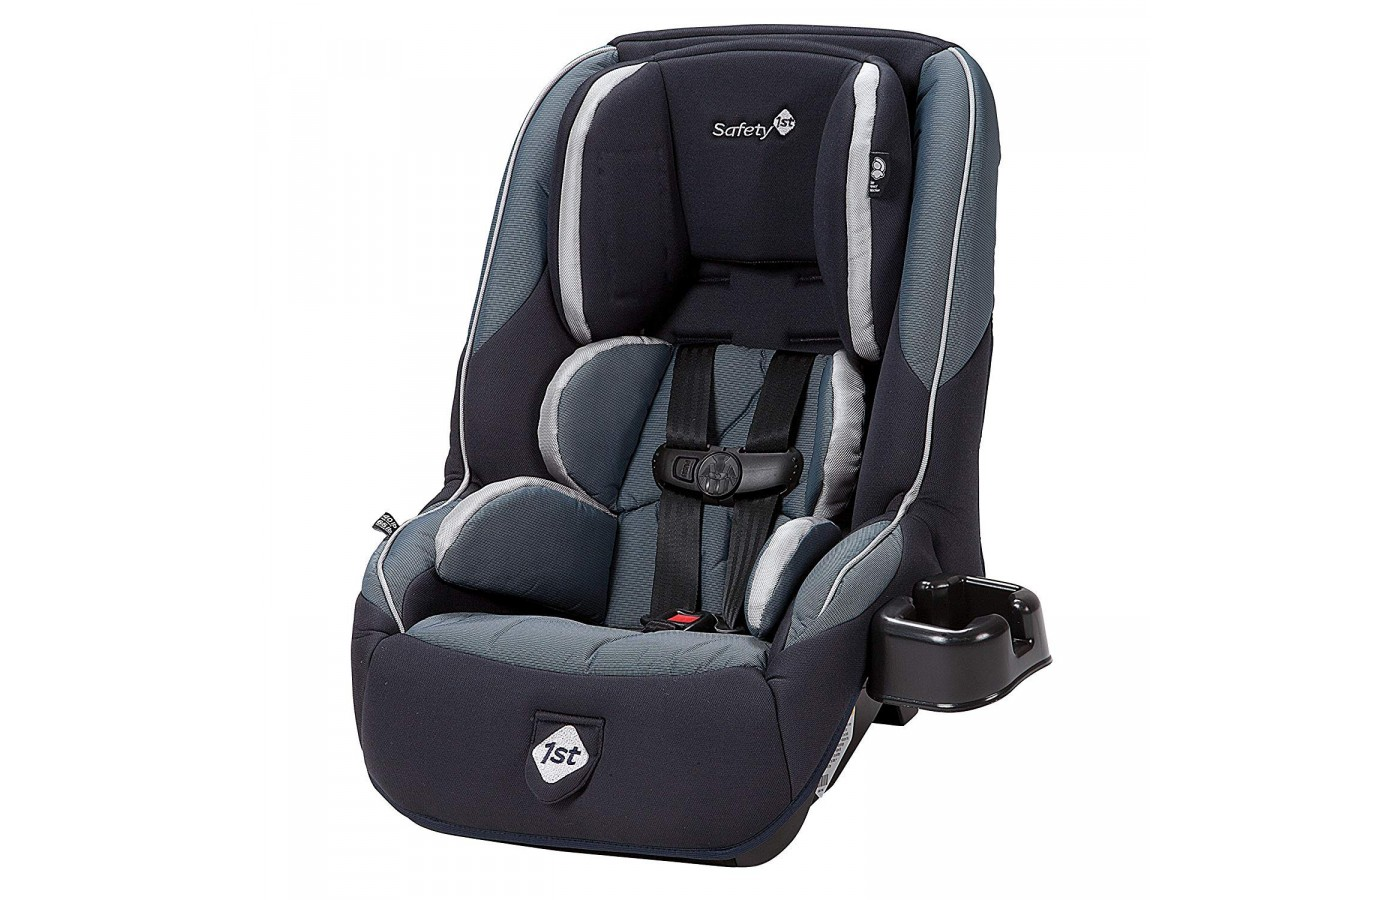 This is an affordable car seat